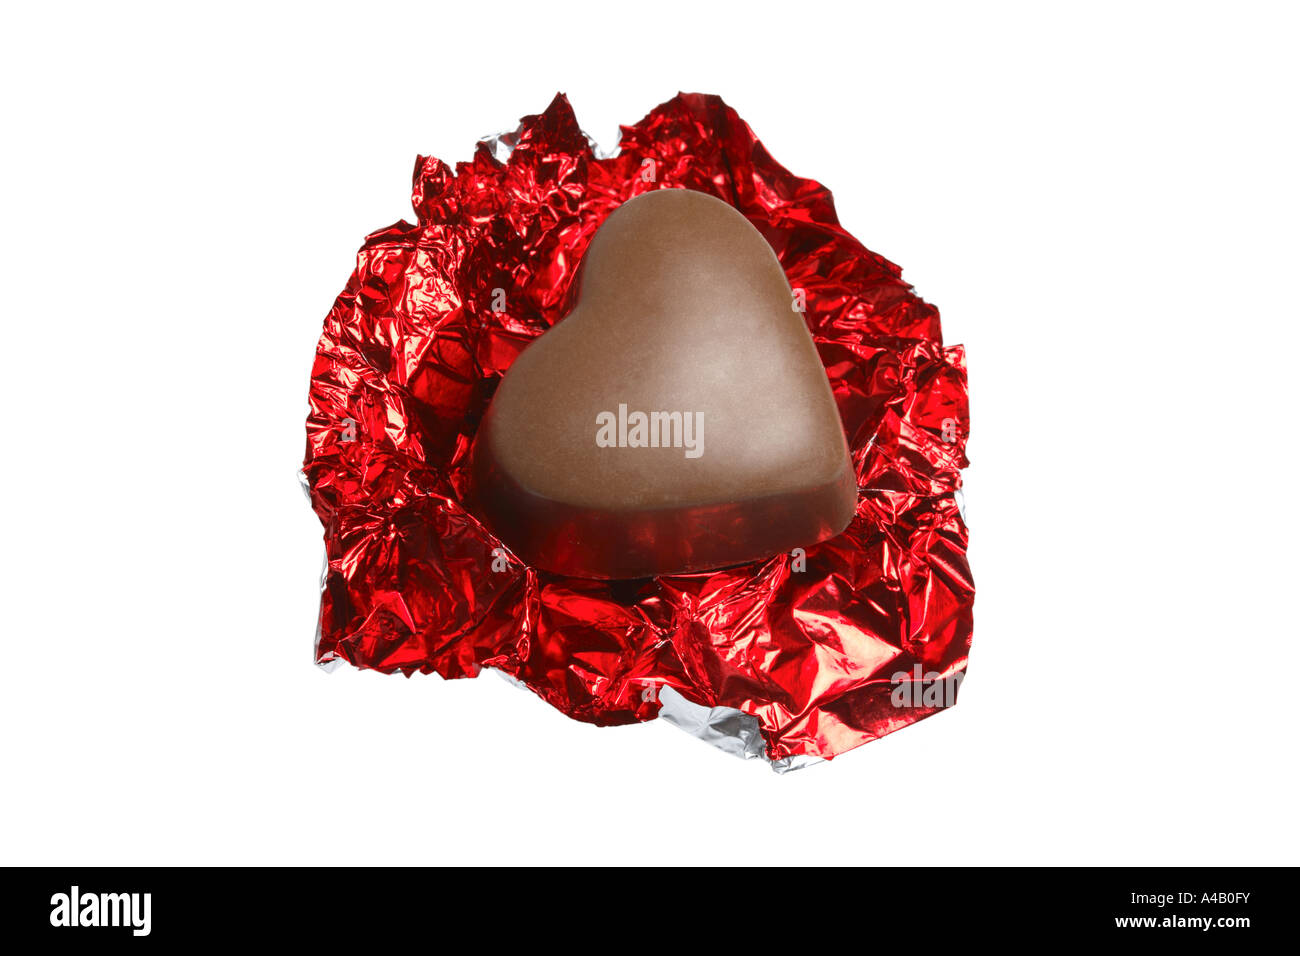 Chocolate Heart with Wrapper cut out on white background - Stock Image